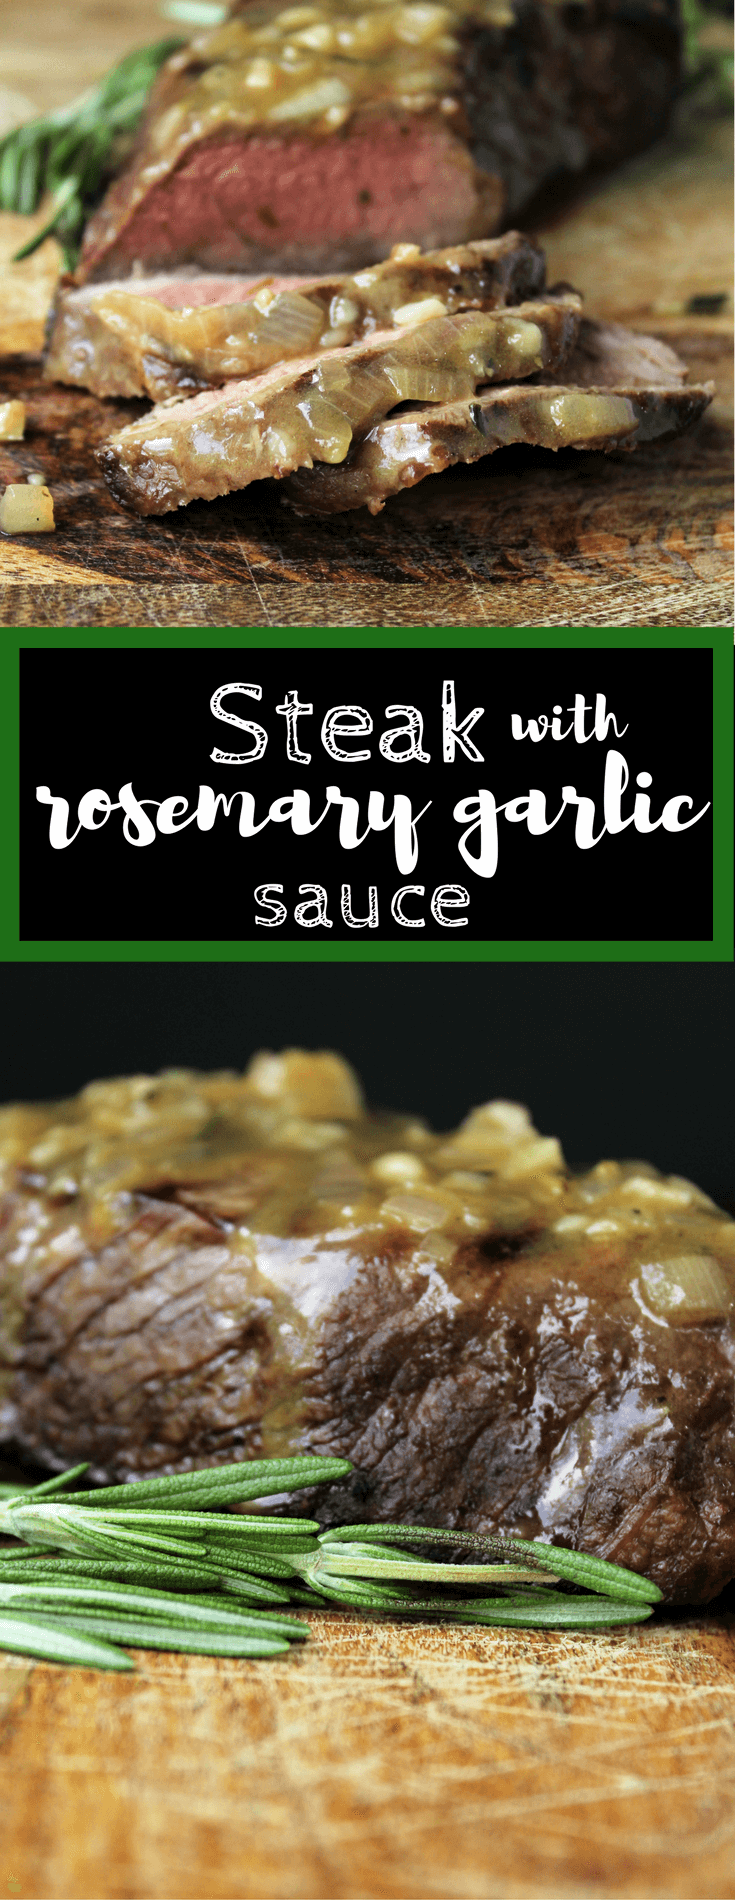 Steak with Rosemary Garlic Sauce pin